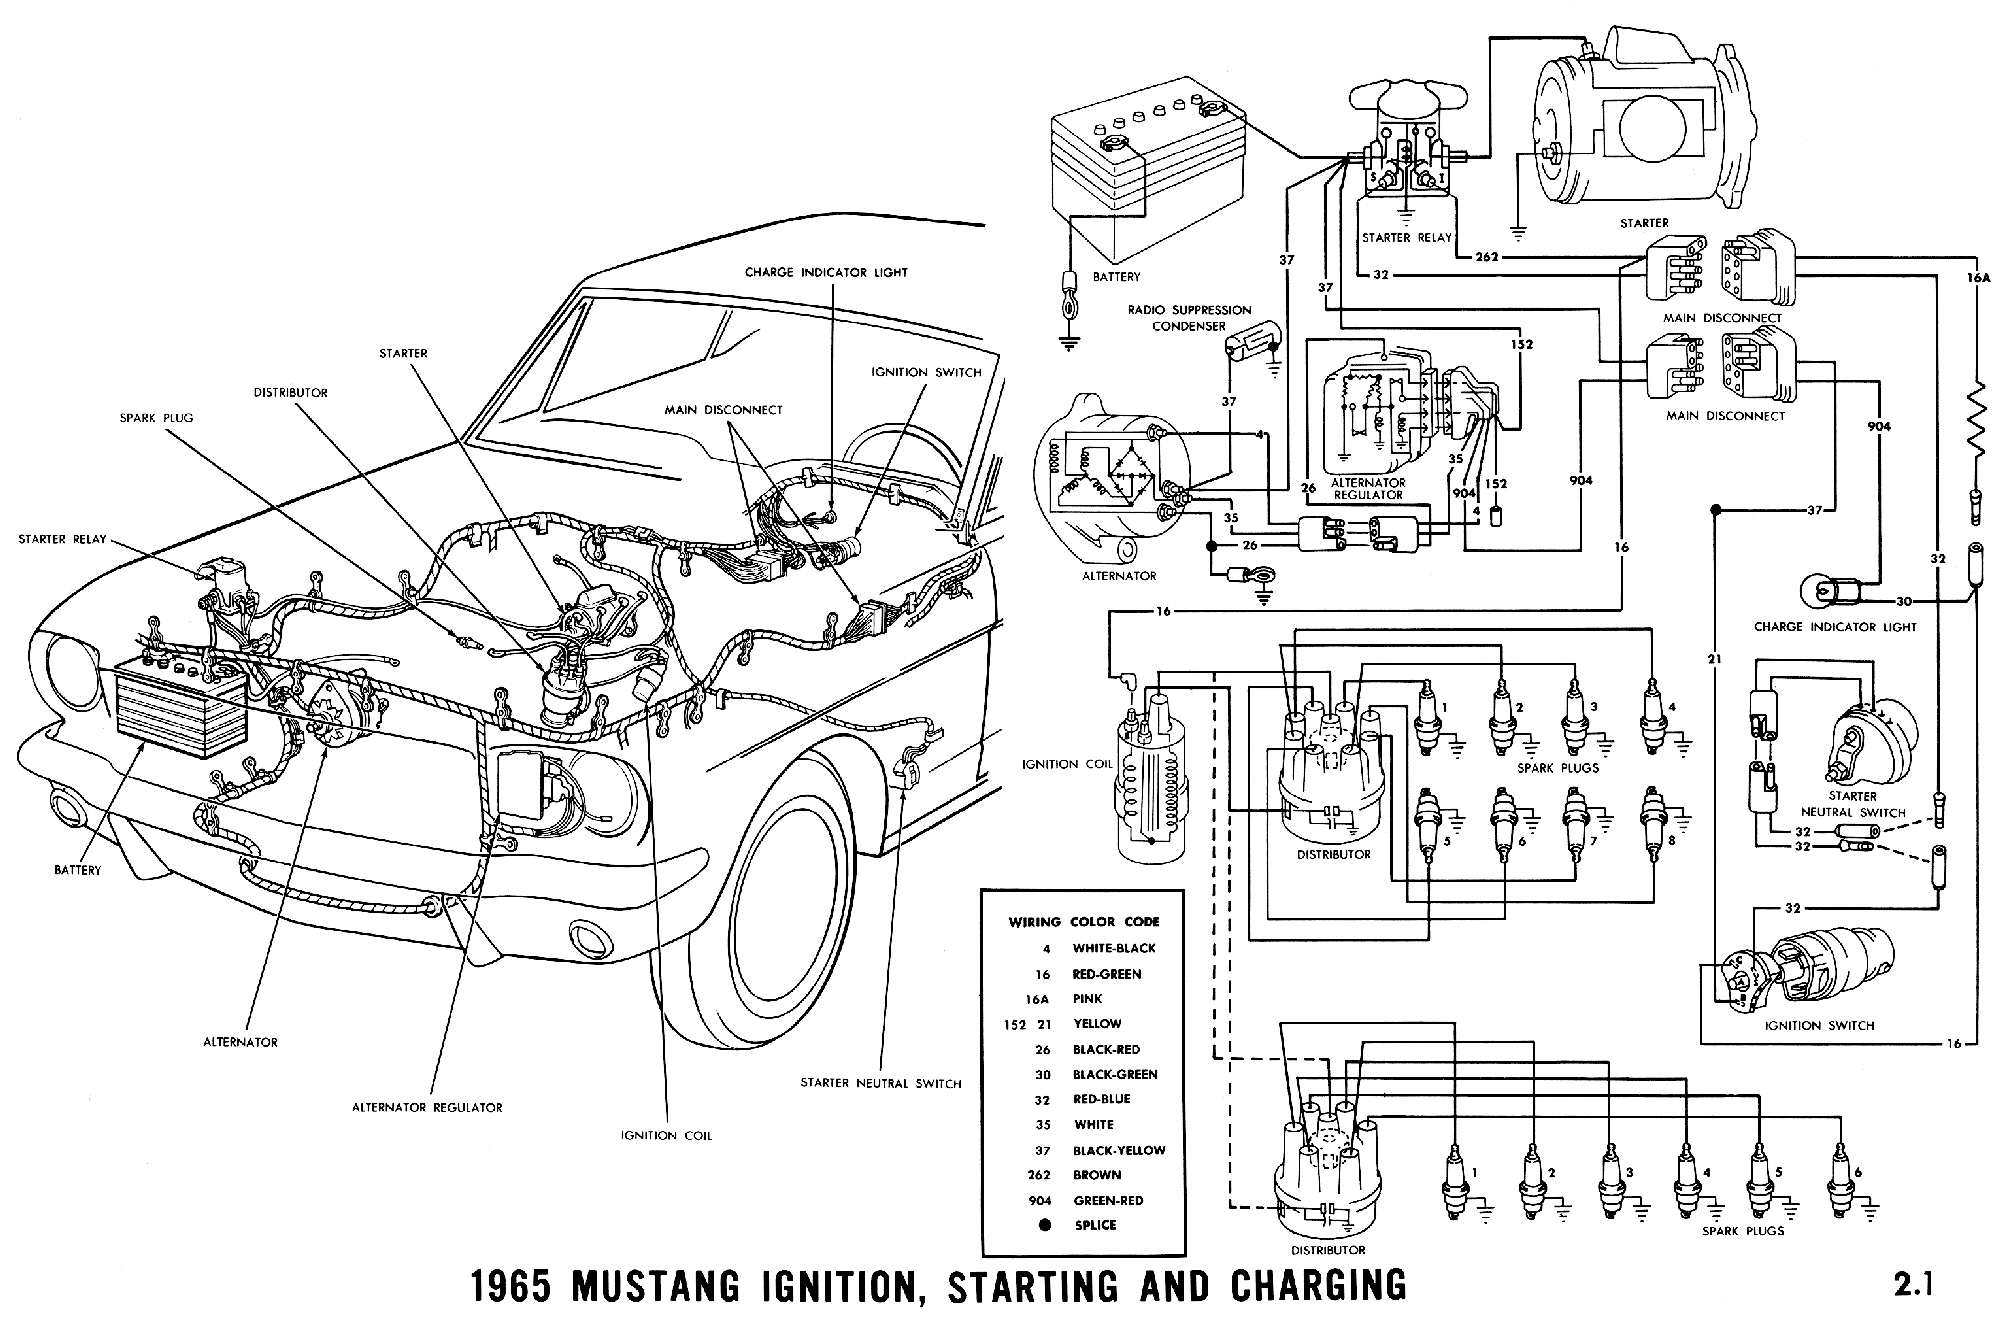 hight resolution of 1965 mustang wiring diagrams average joe restoration 1965 mustang ignition starting and charging pictorial and